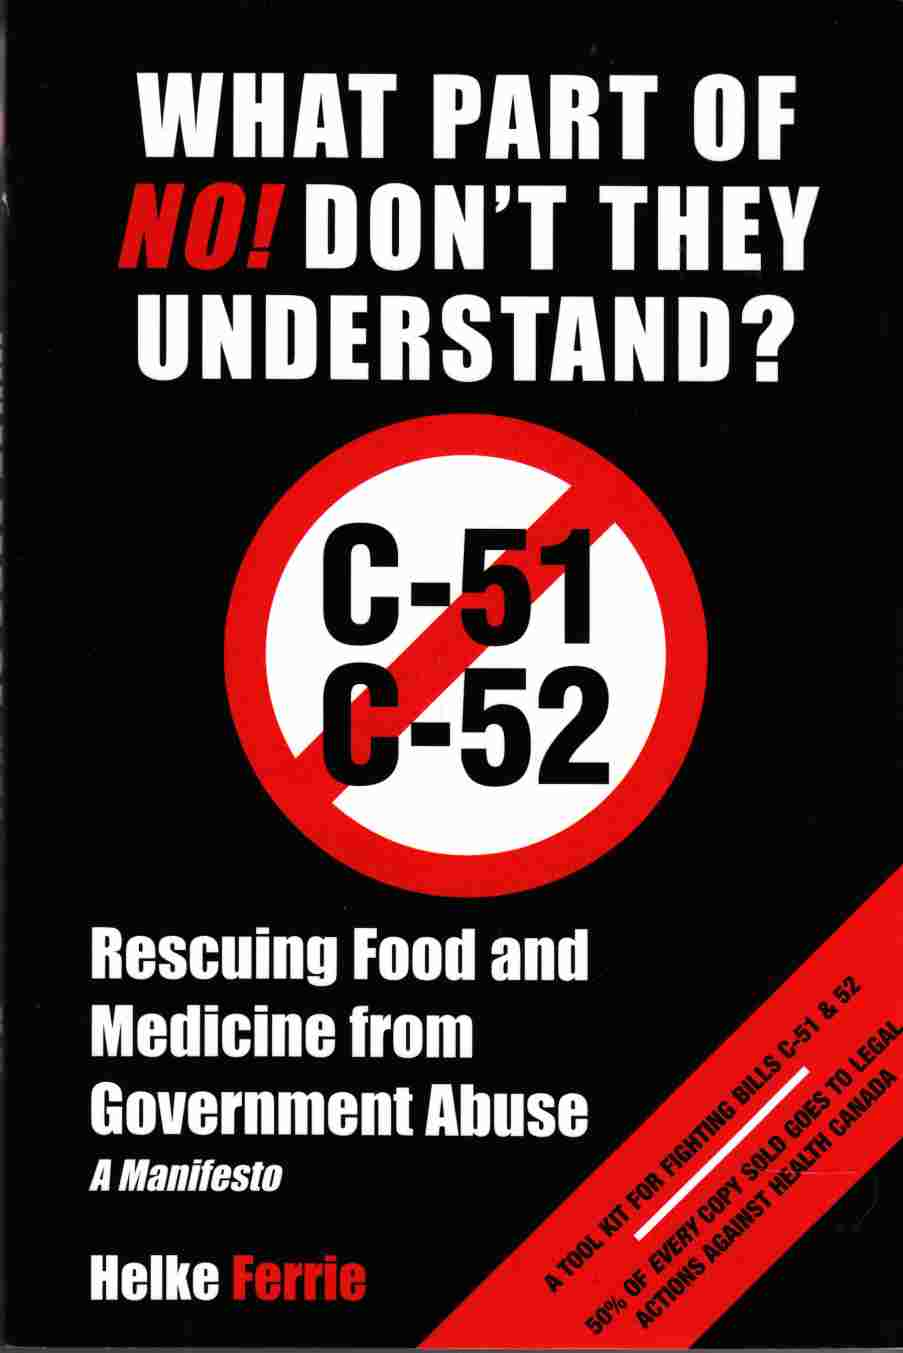 Image for What Part of No! Don't They Understand Rescuing Food and Medicine from Government Abuse - a Manifesto